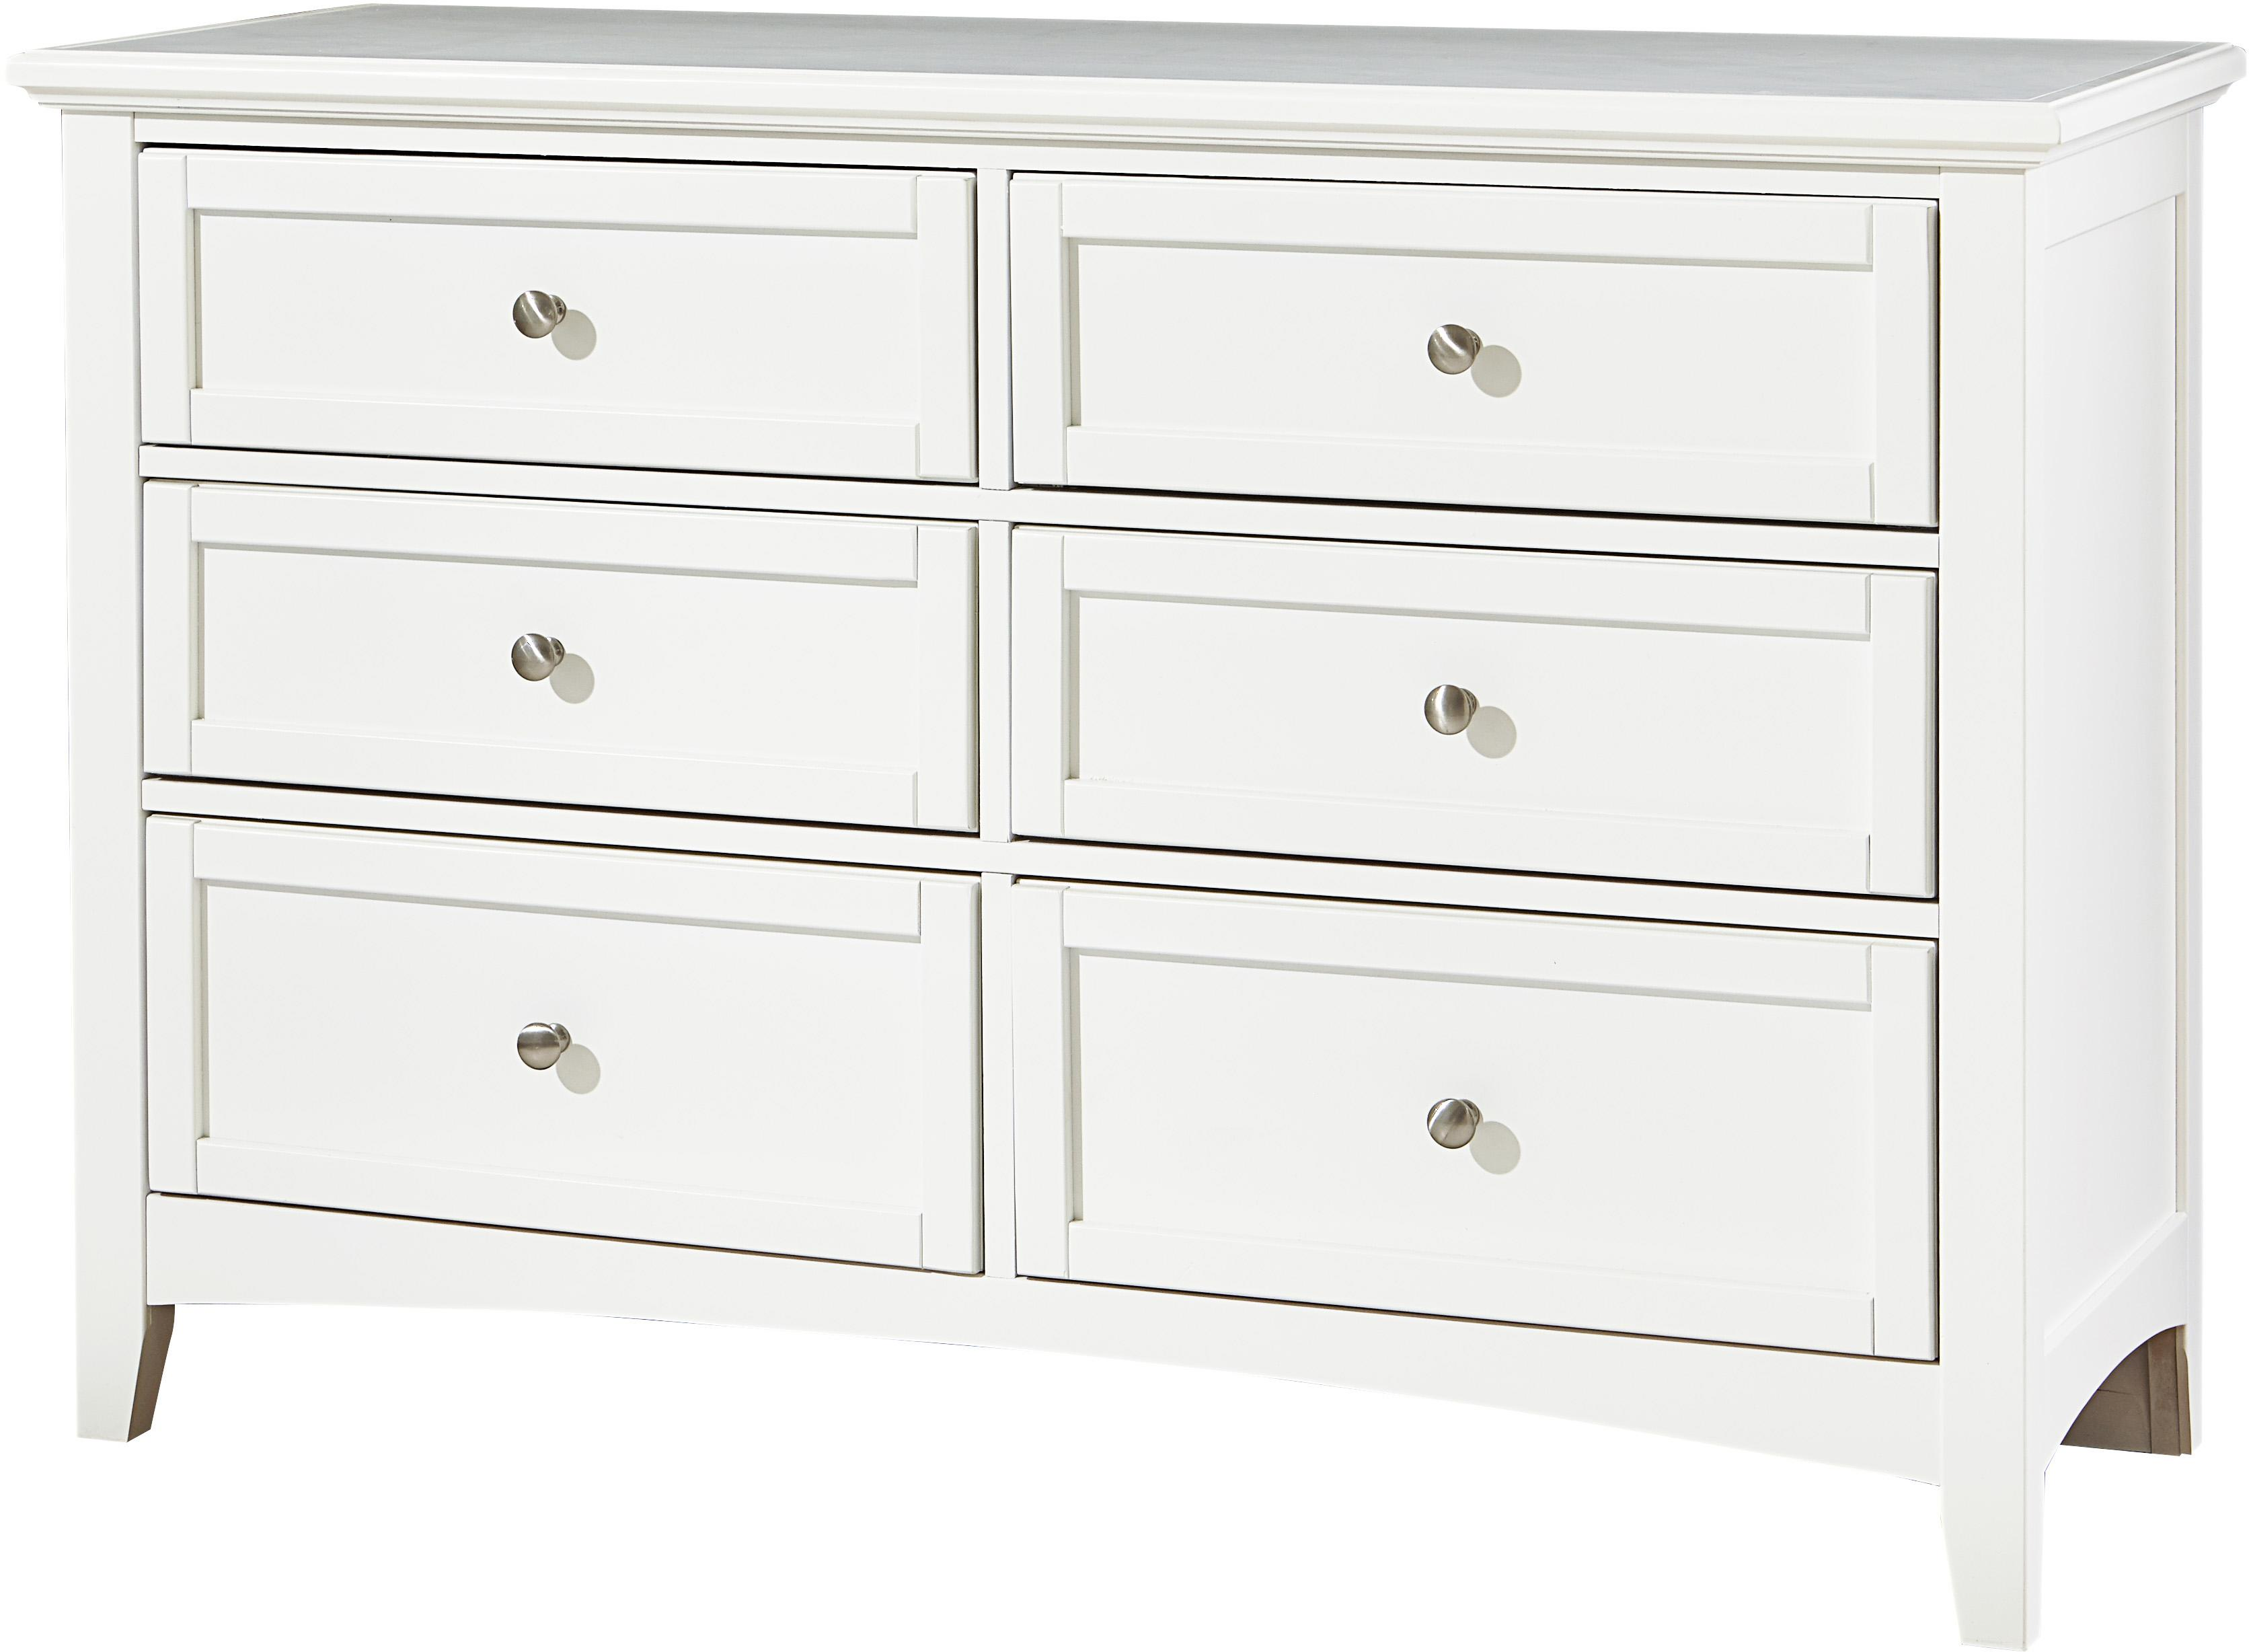 Bonanza Double Dresser - 6 Drawers by Vaughan Bassett at VanDrie Home Furnishings